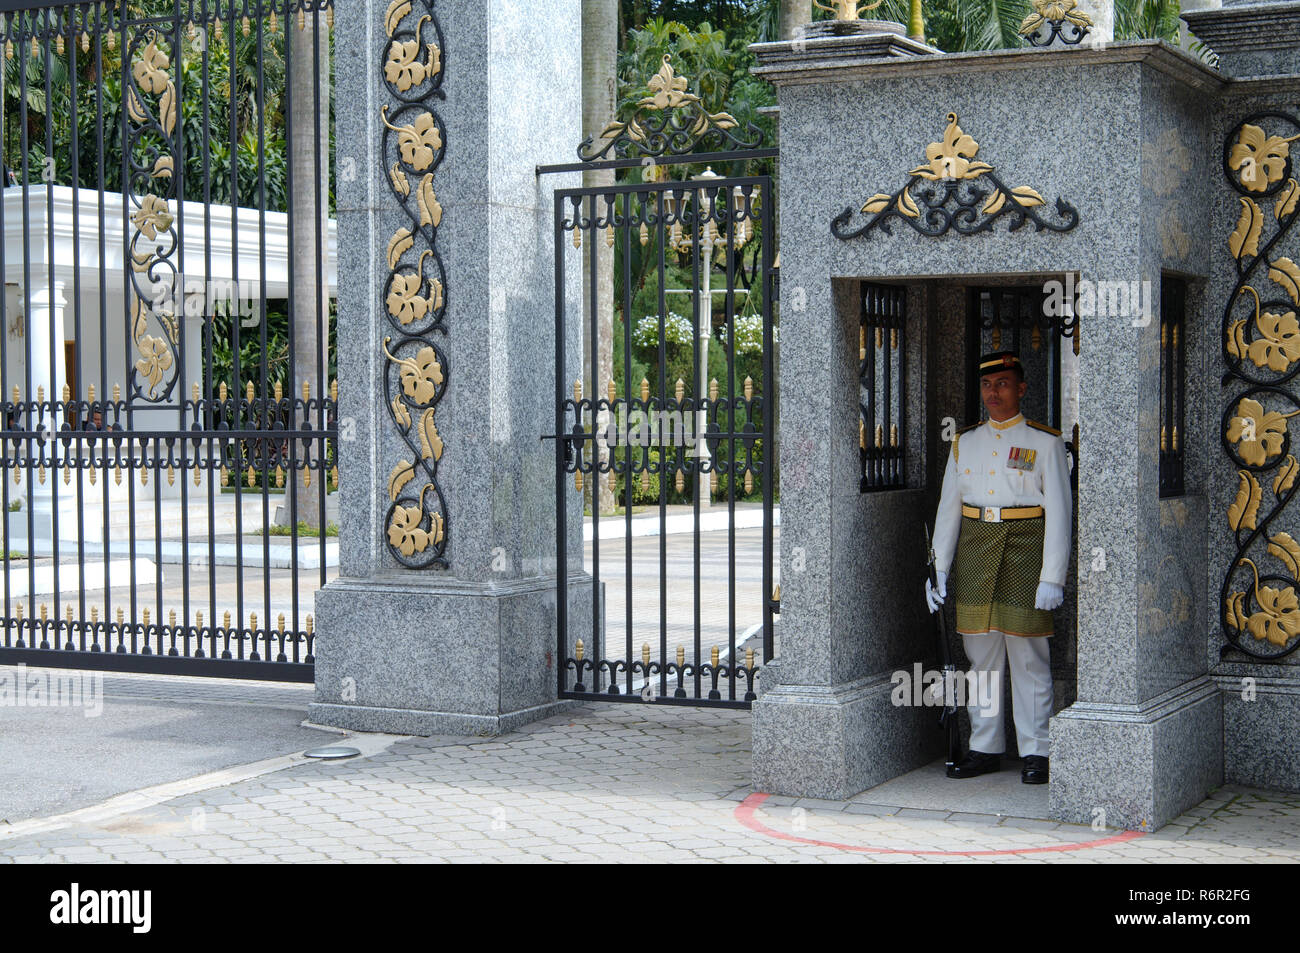 Guard guarding the entrance to the royal residence, Kuala Lumpur, Malaysia,  Asia - Stock Image